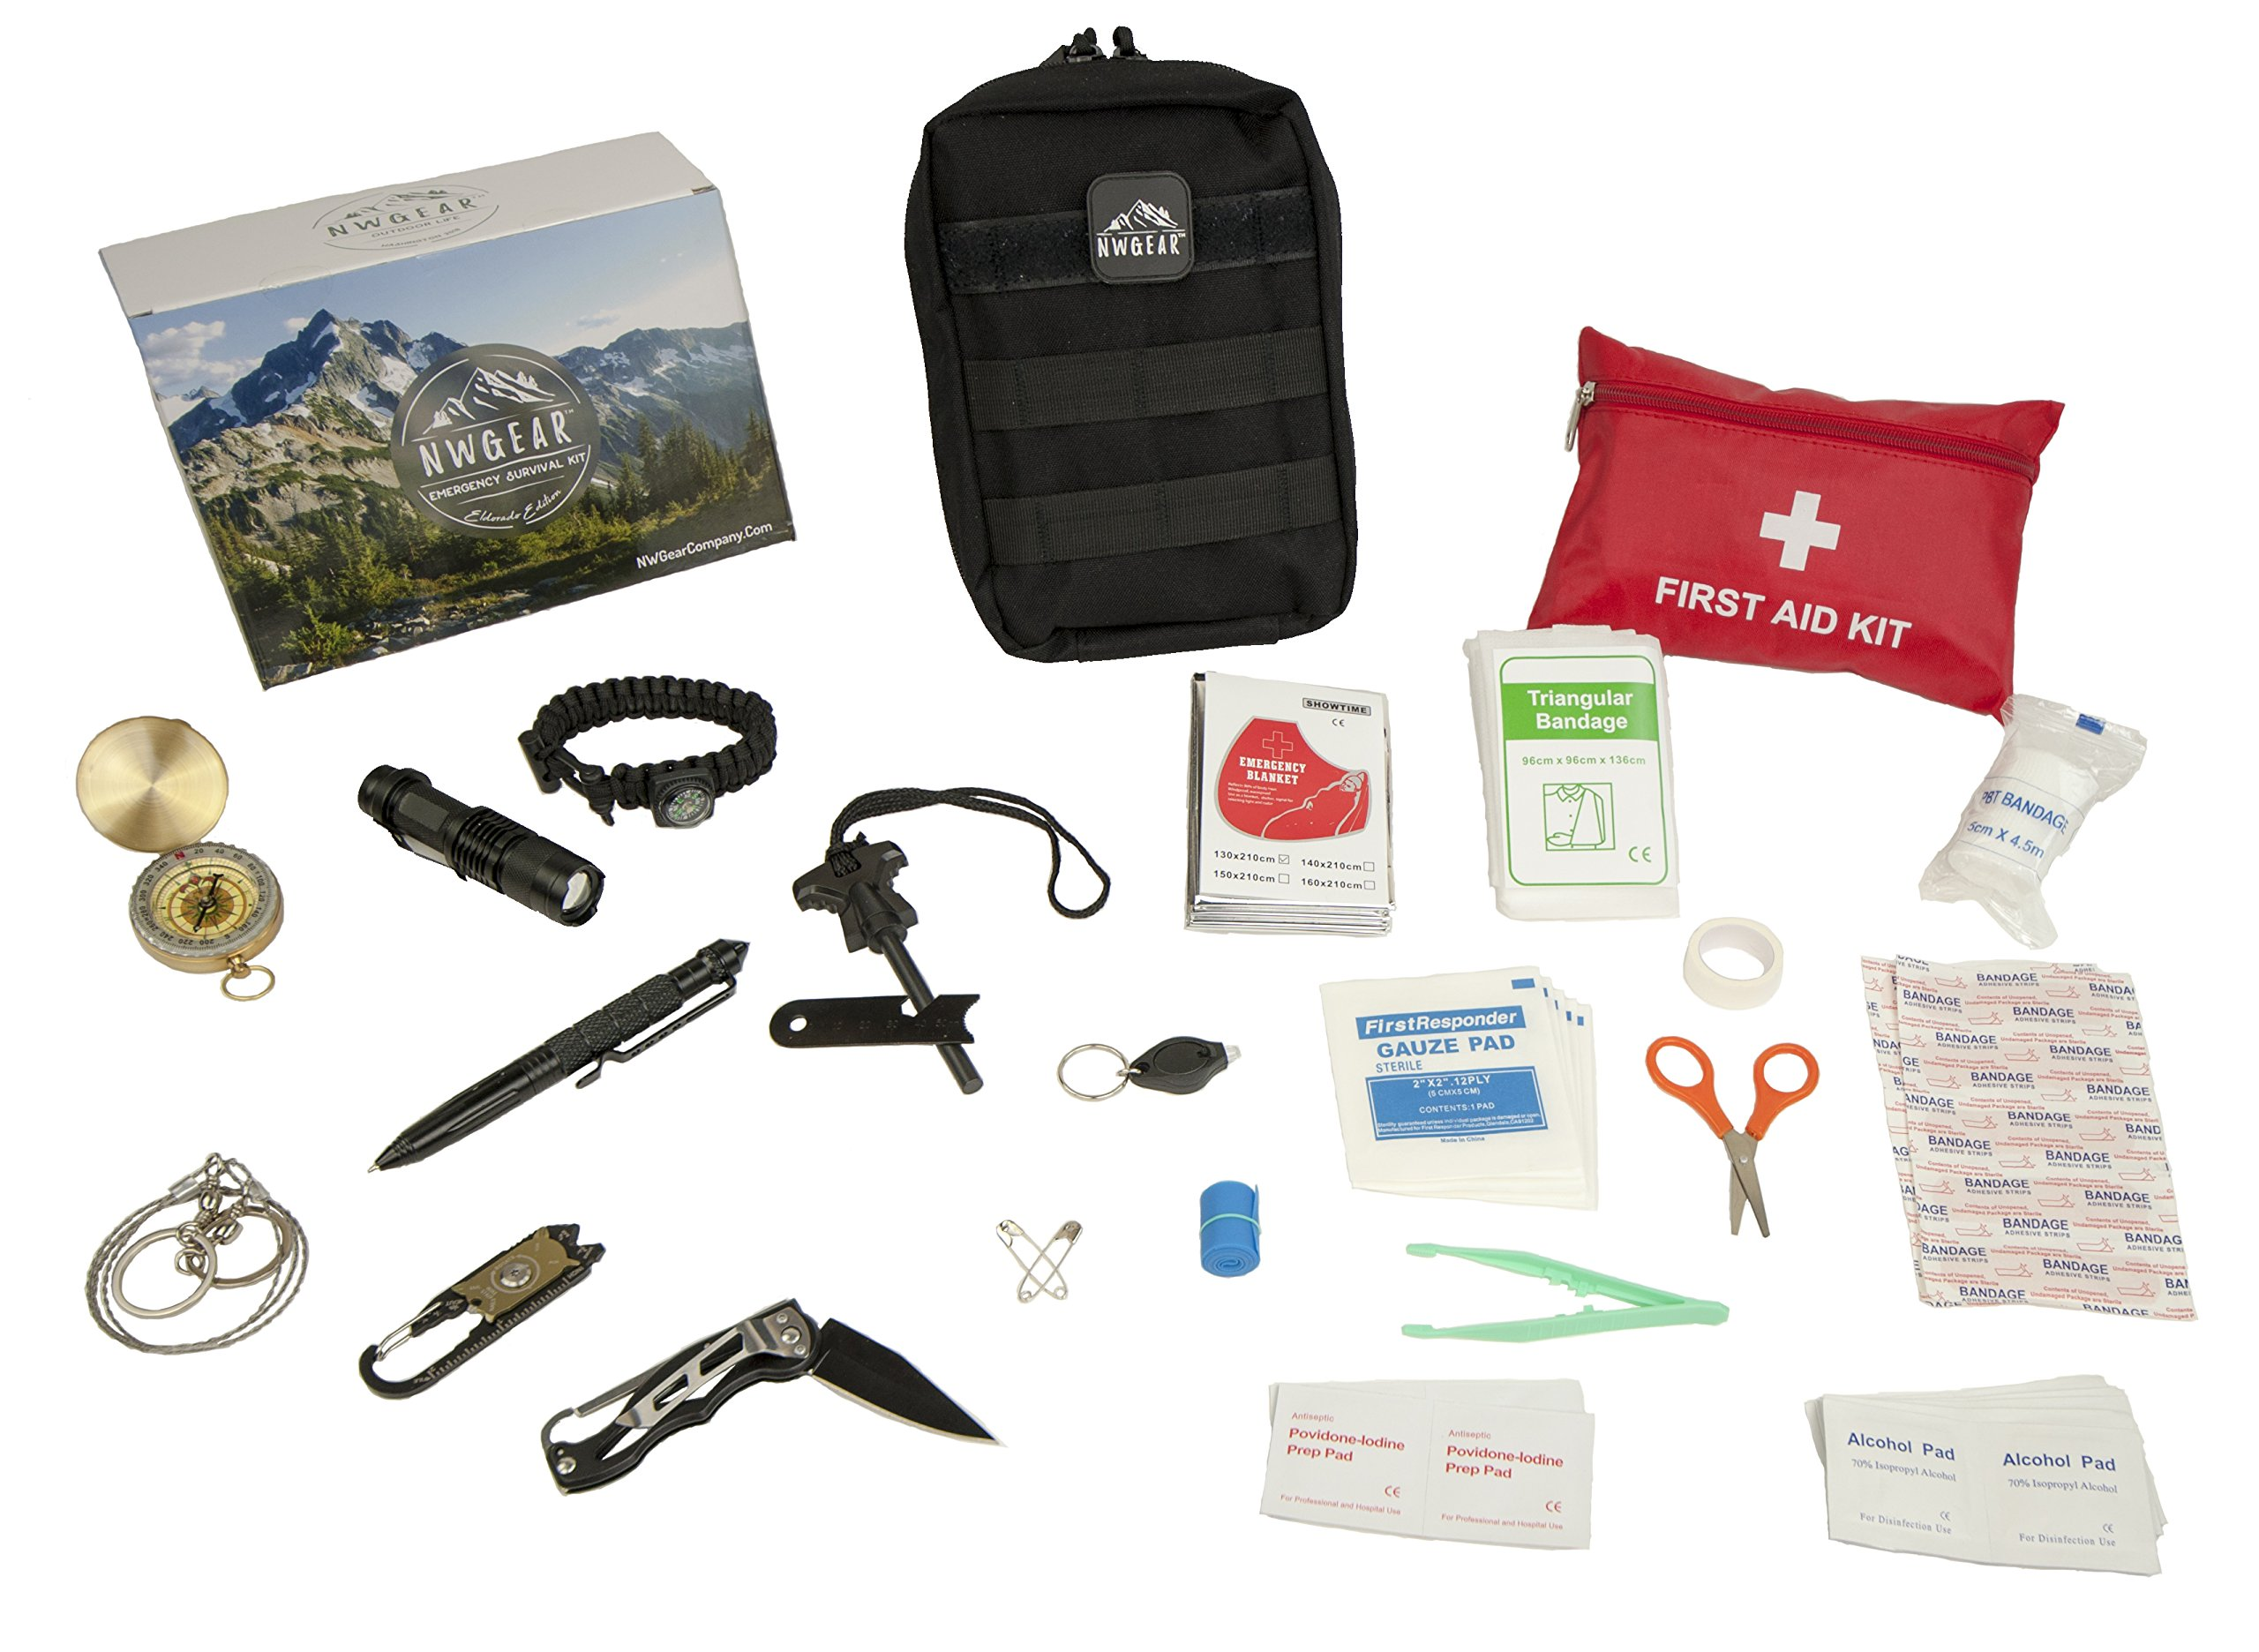 NWGear 75 in 1 Emergency Survival Kit with First Aid Kit for Car | Emergency Blanket & Flashlight | Rugged Water-Resistant Molle Pouch | and More Survival Gear